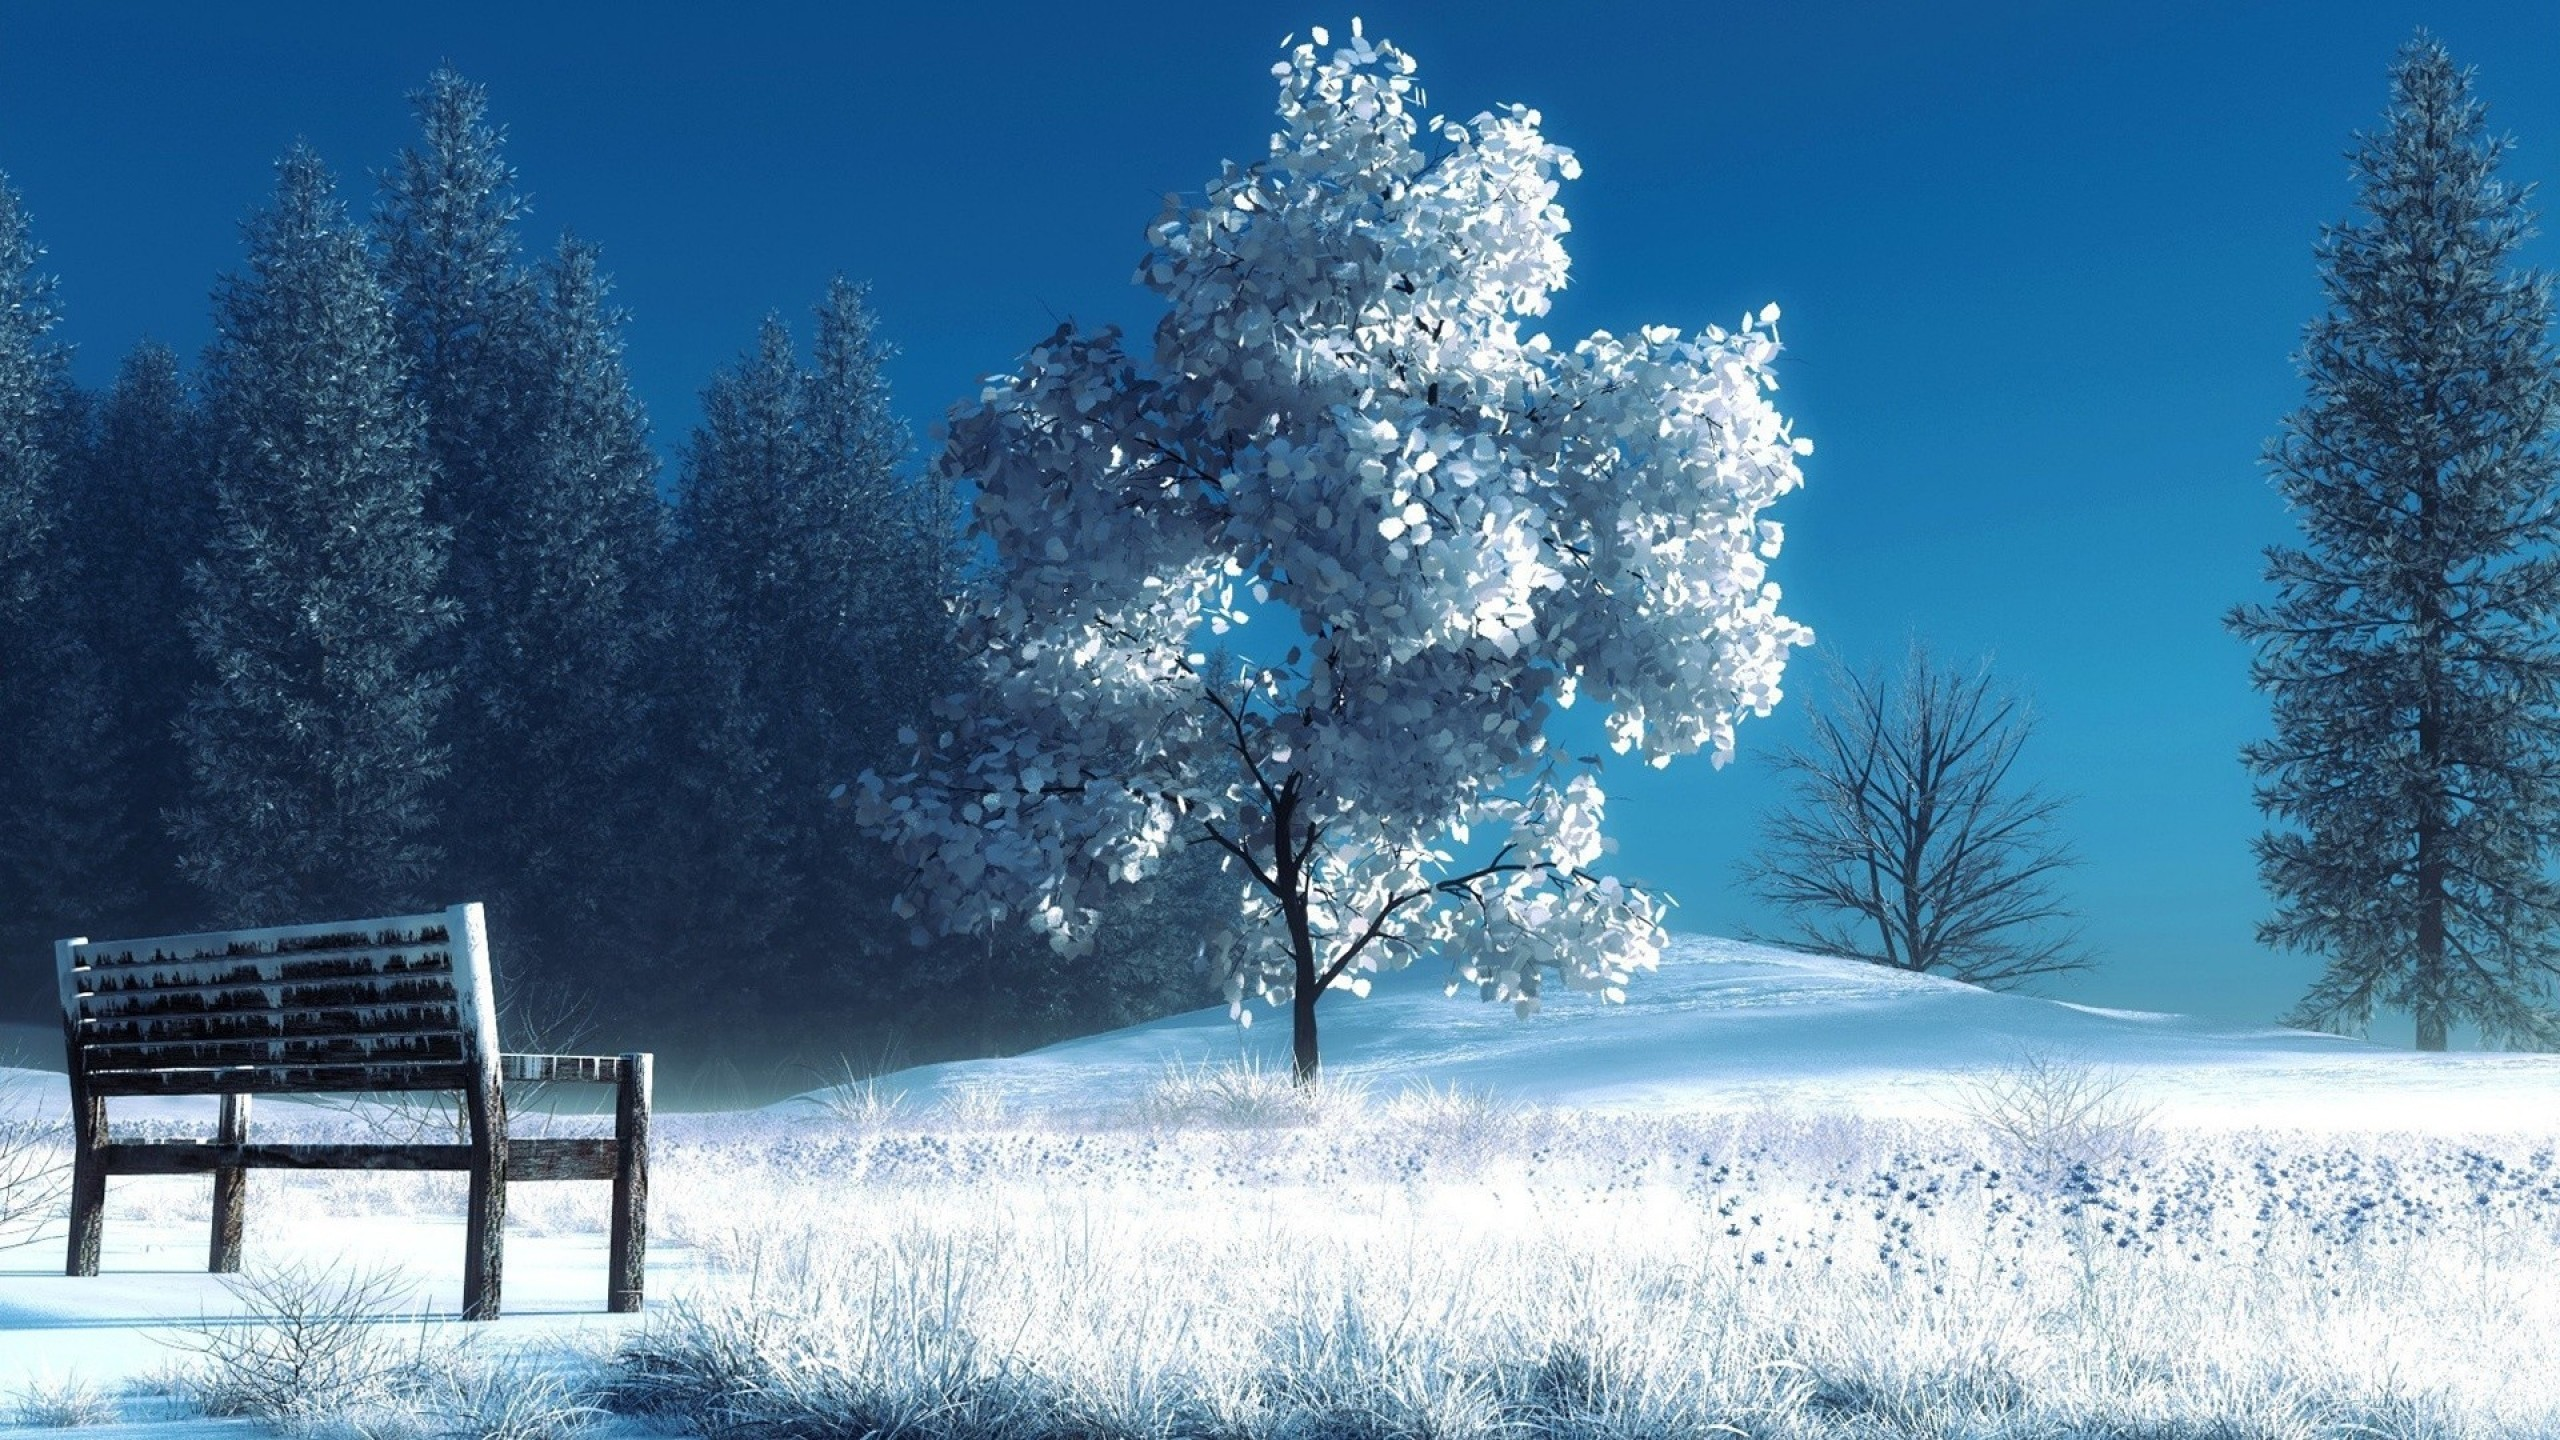 2560x1440 Preview wallpaper winter, landscape, nature, snow, bench, trees